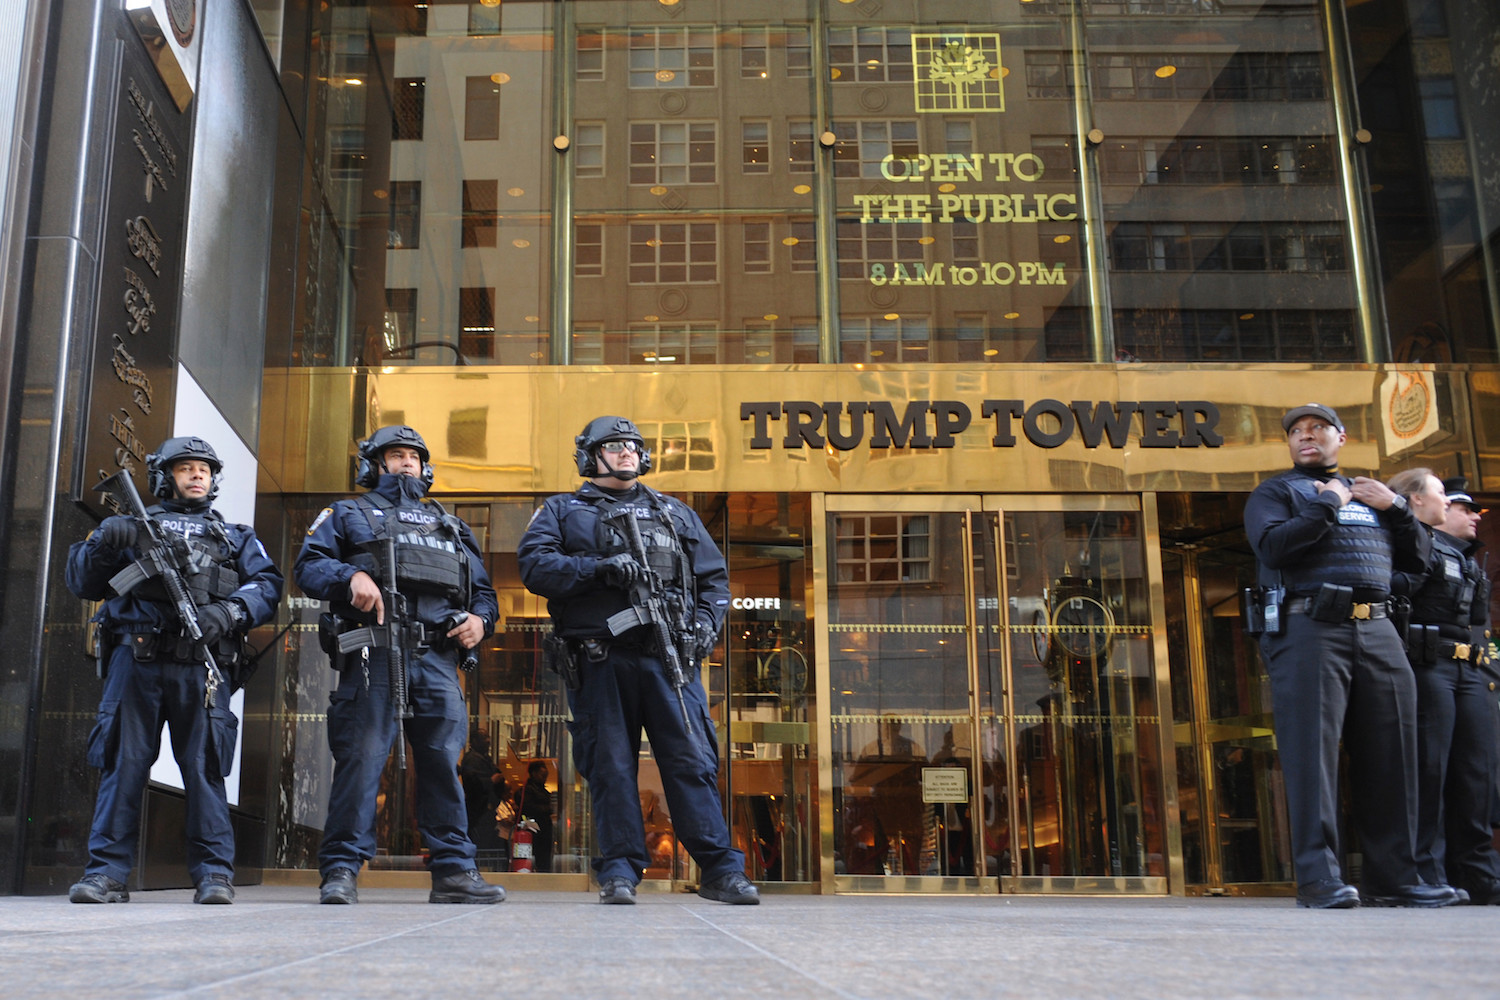 161124-trump-tower-security-feature.jpg